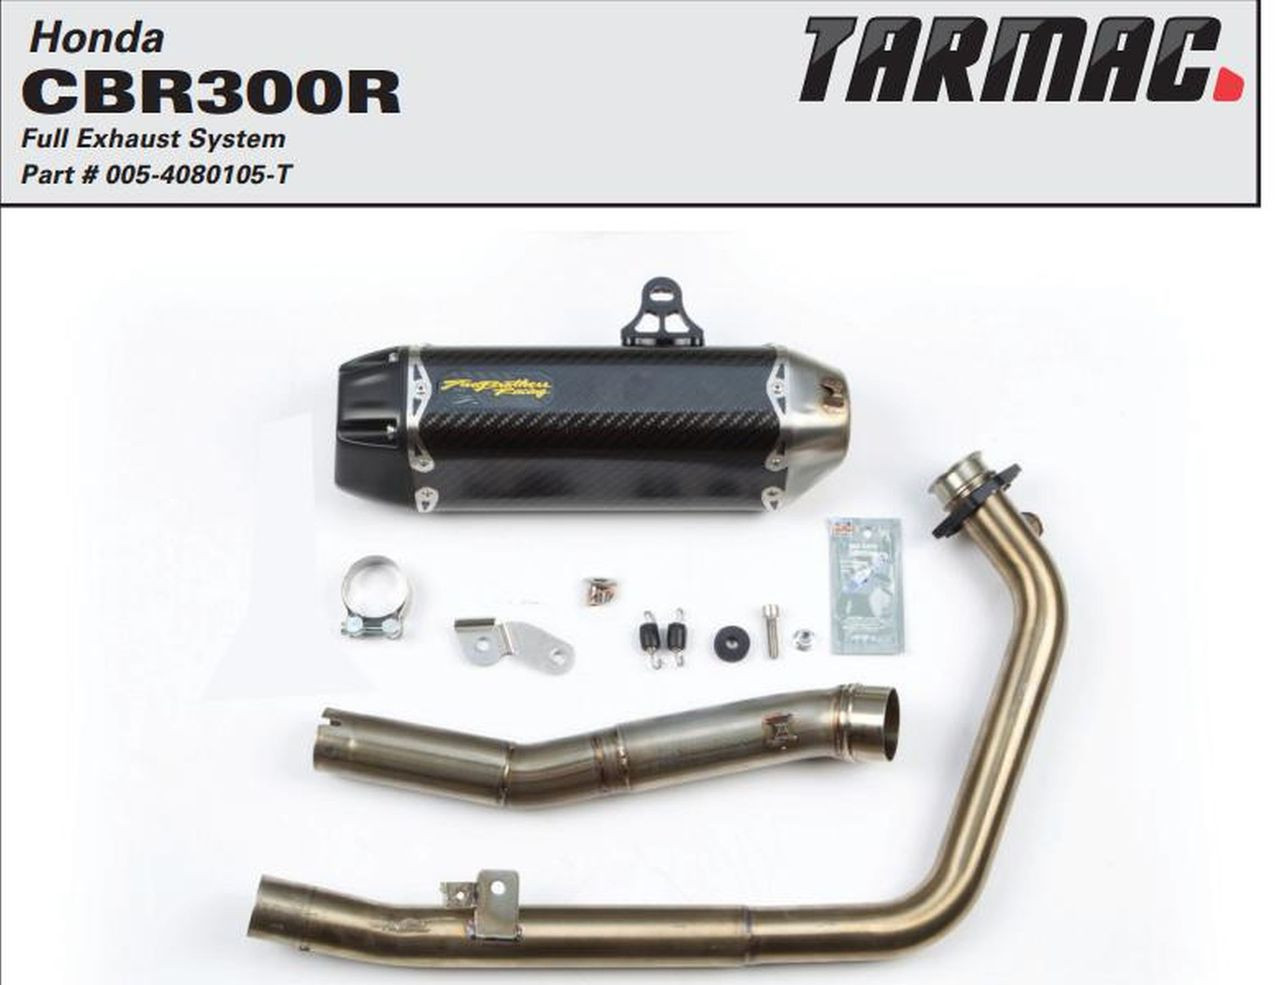 Carbon Fiber Two Brothers Racing 005-4020105-T Tarmac Full System Exhaust